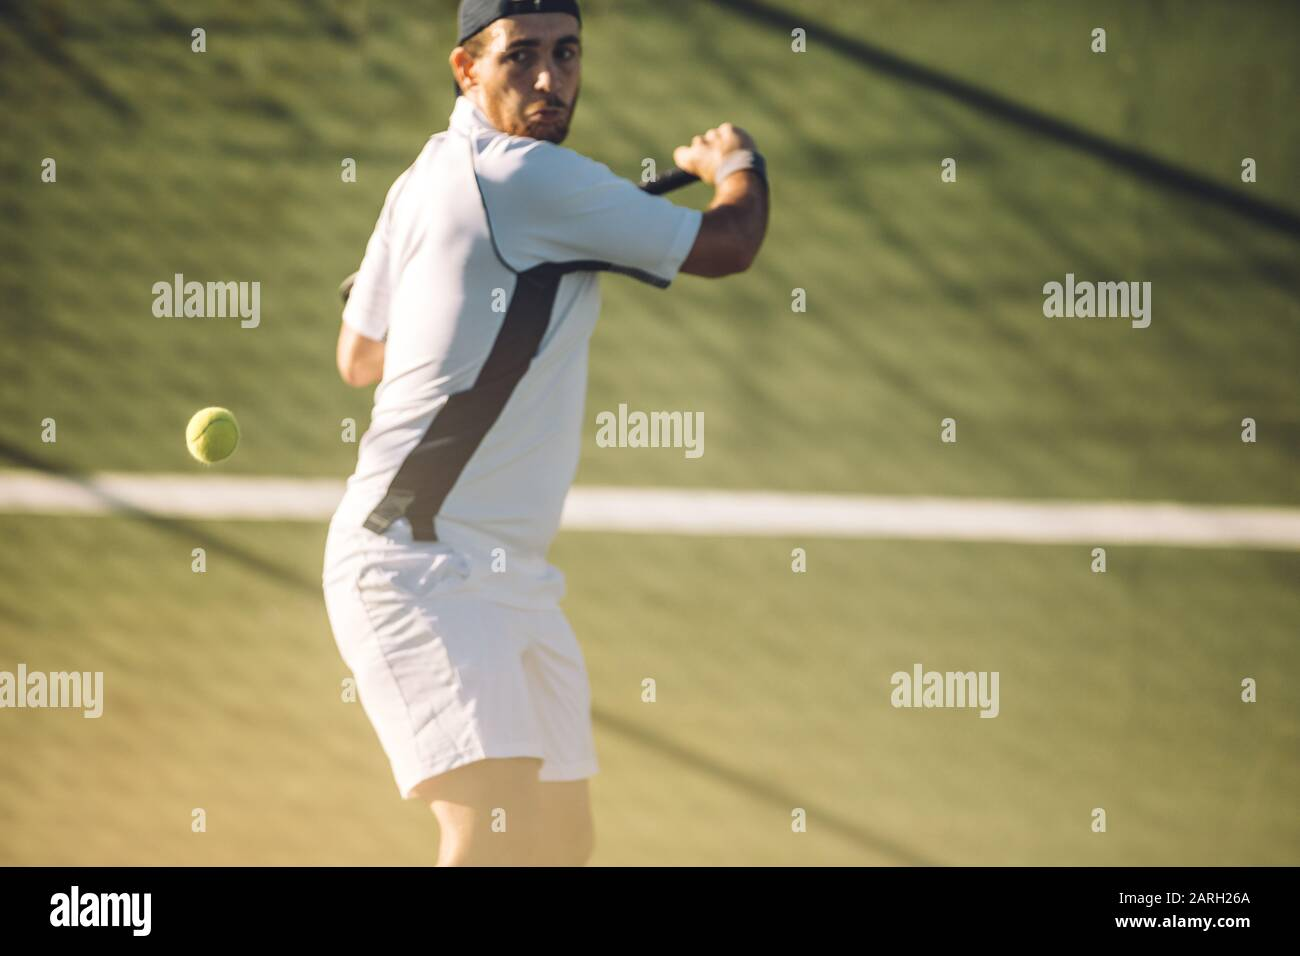 Young male tennis player hitting a powerful backhand during a match. Tennis player playing tennis on a club hard court. Stock Photo